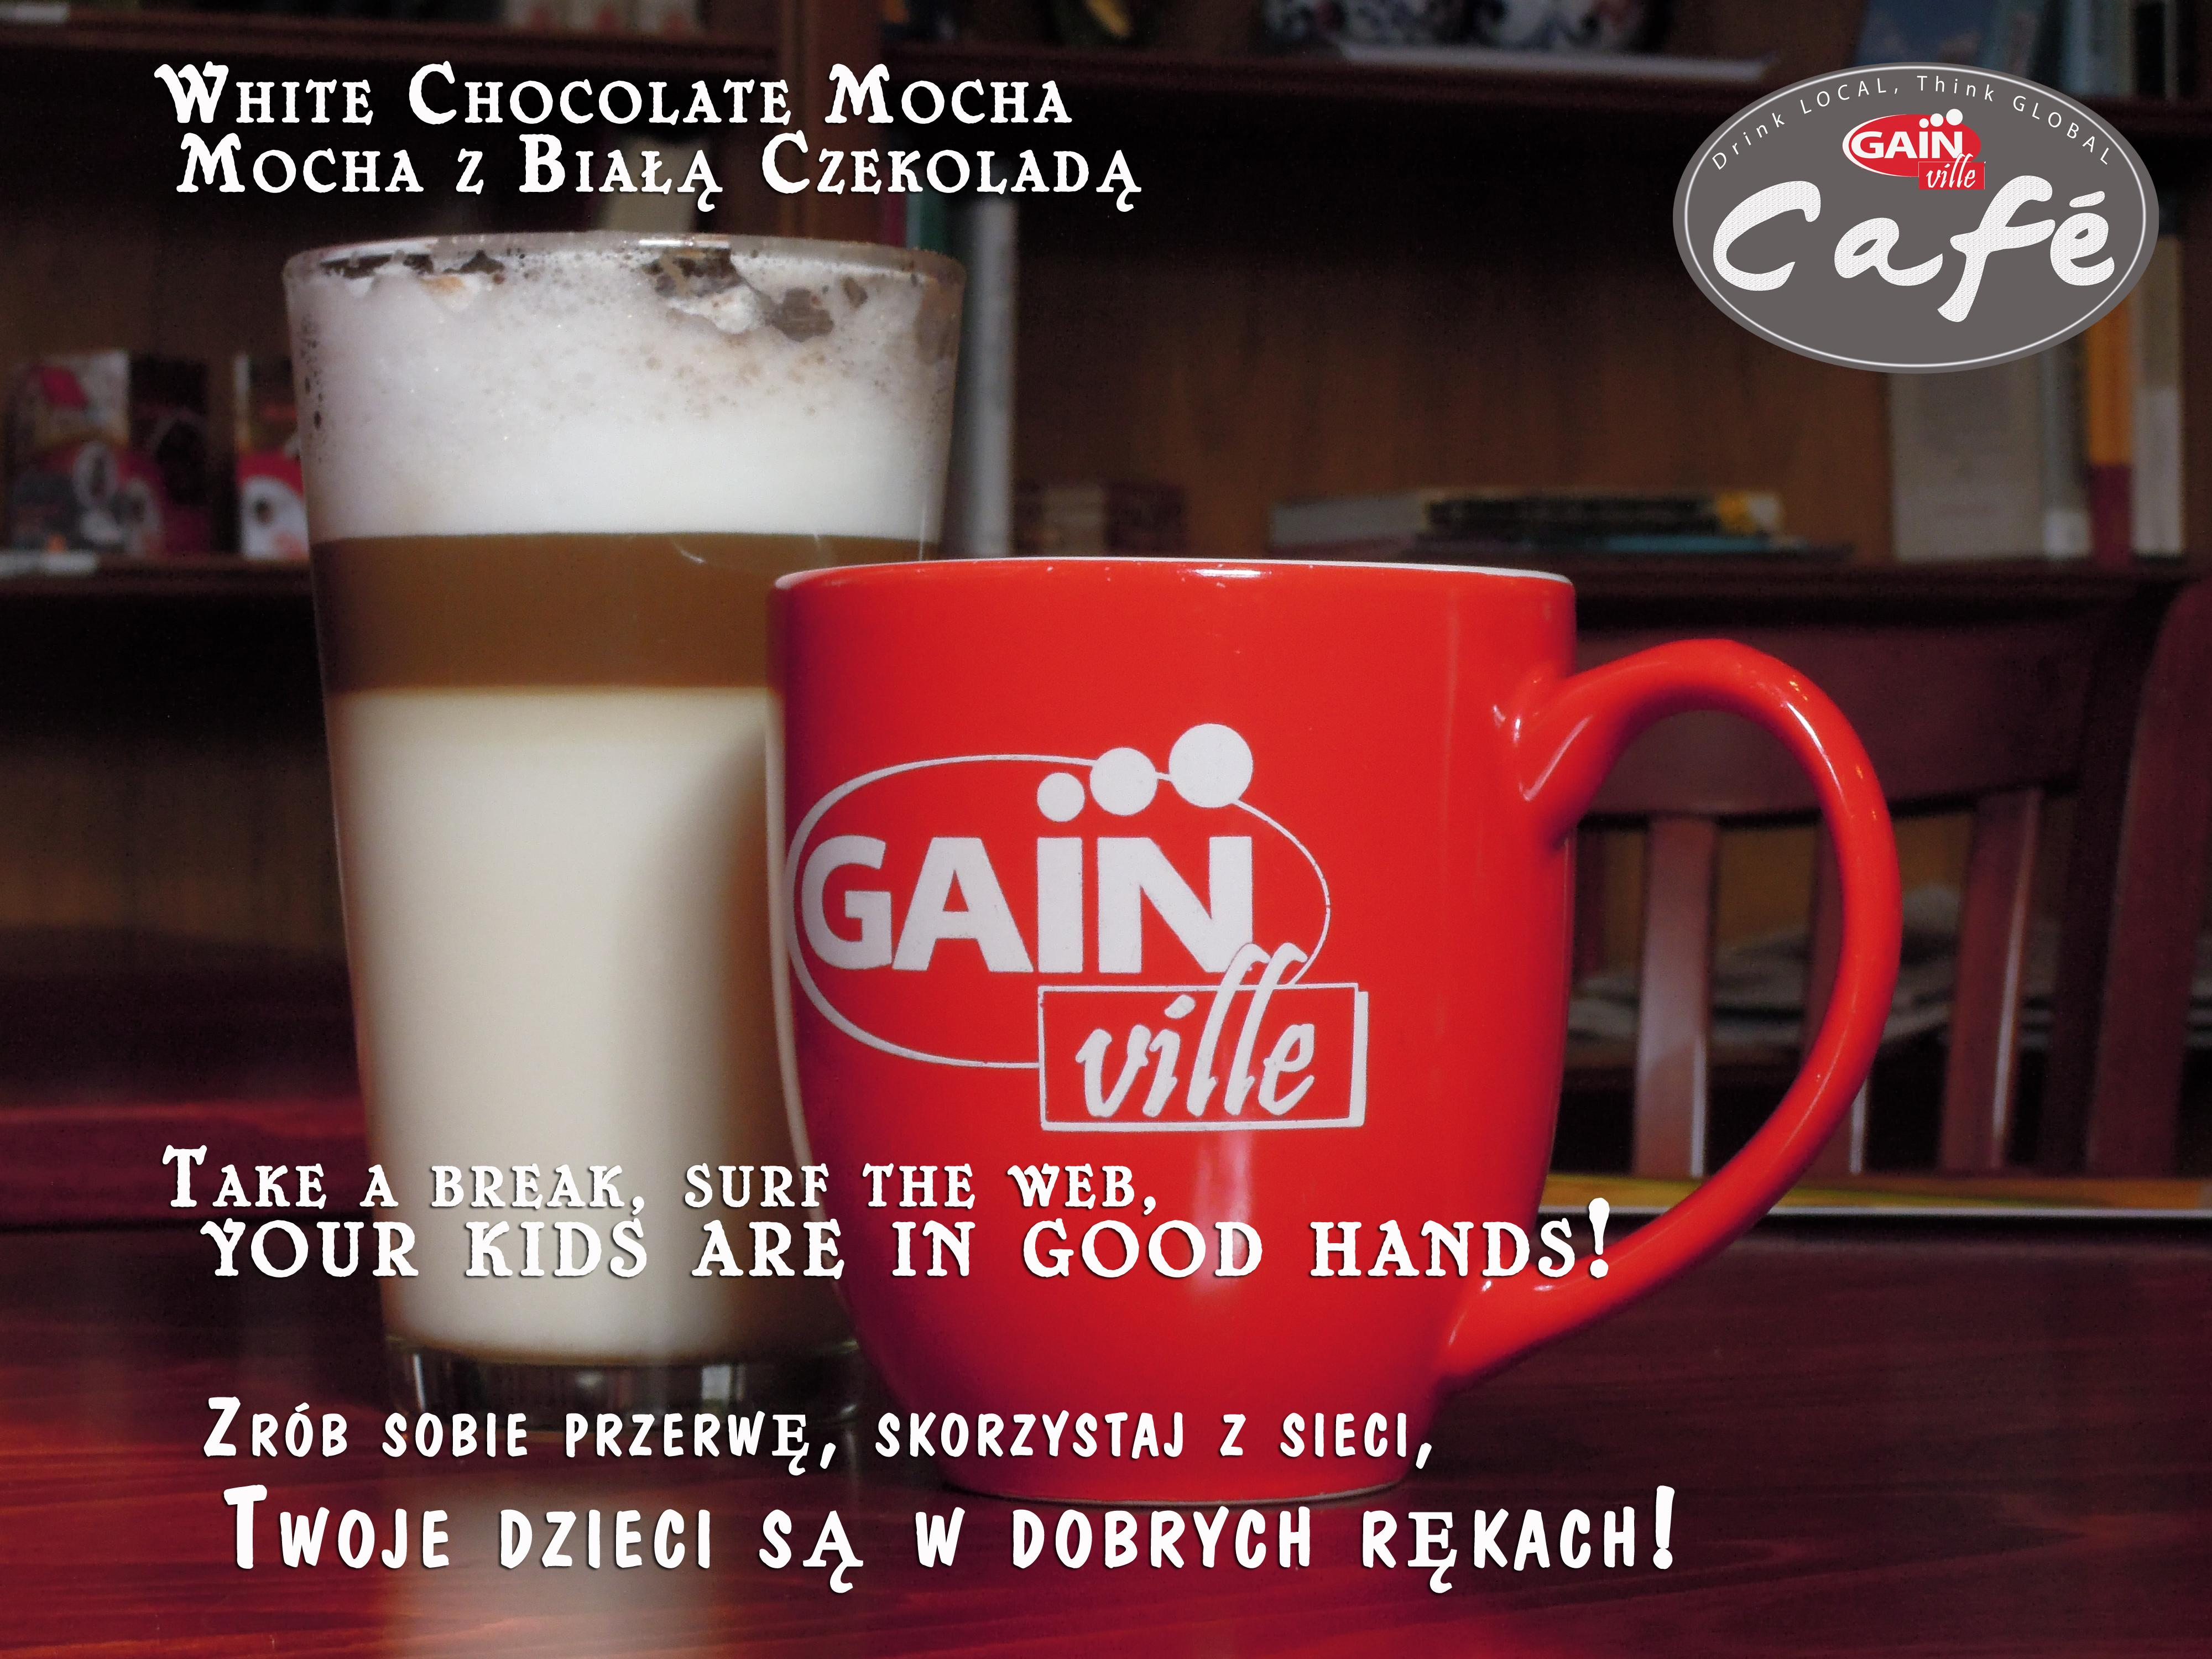 White Chocolate Mocha at GainVille at Gainville Learning Center and Cafe